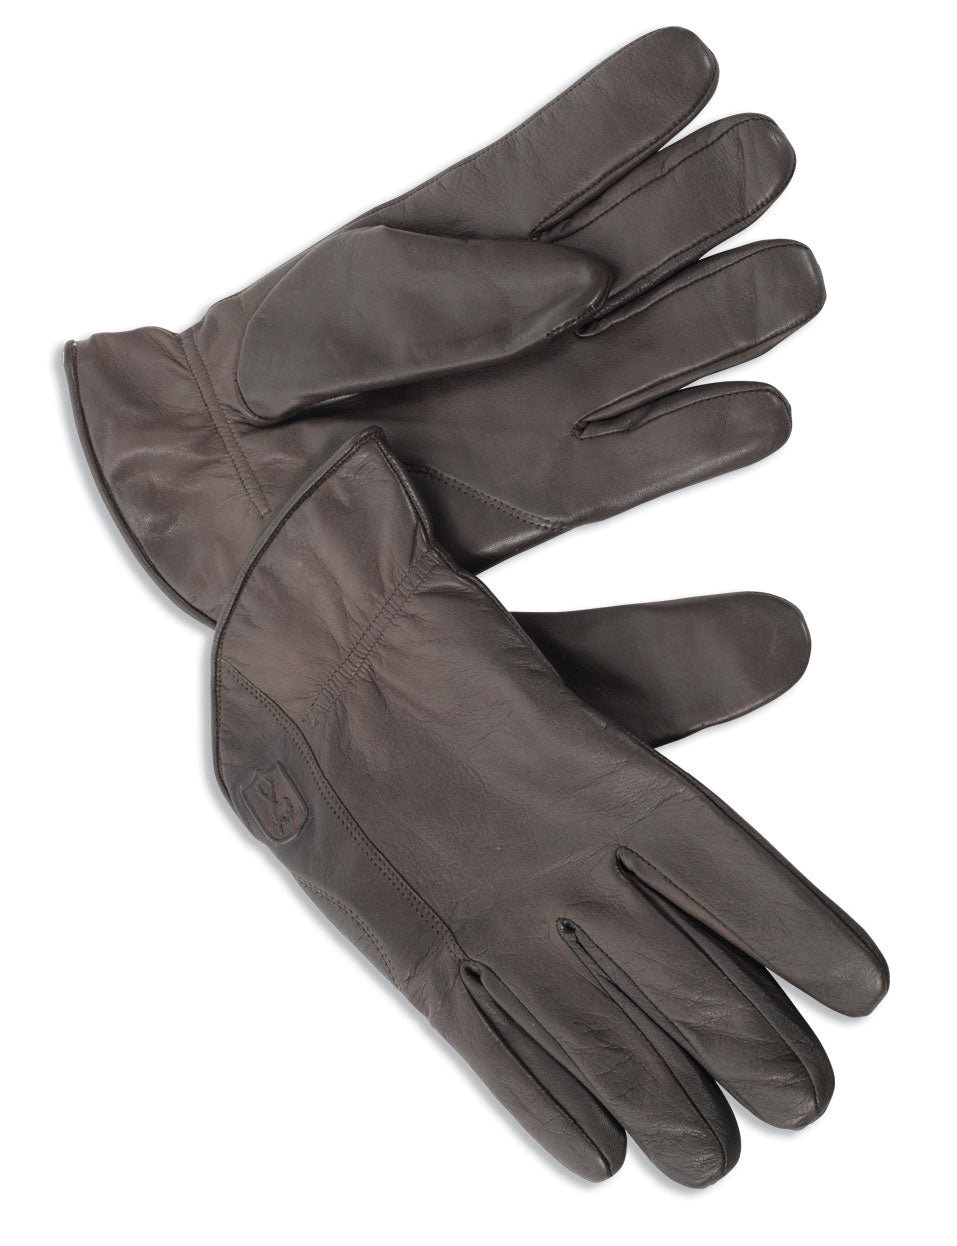 Finest quality leather gloves with light knitted pure wool liner for warmth